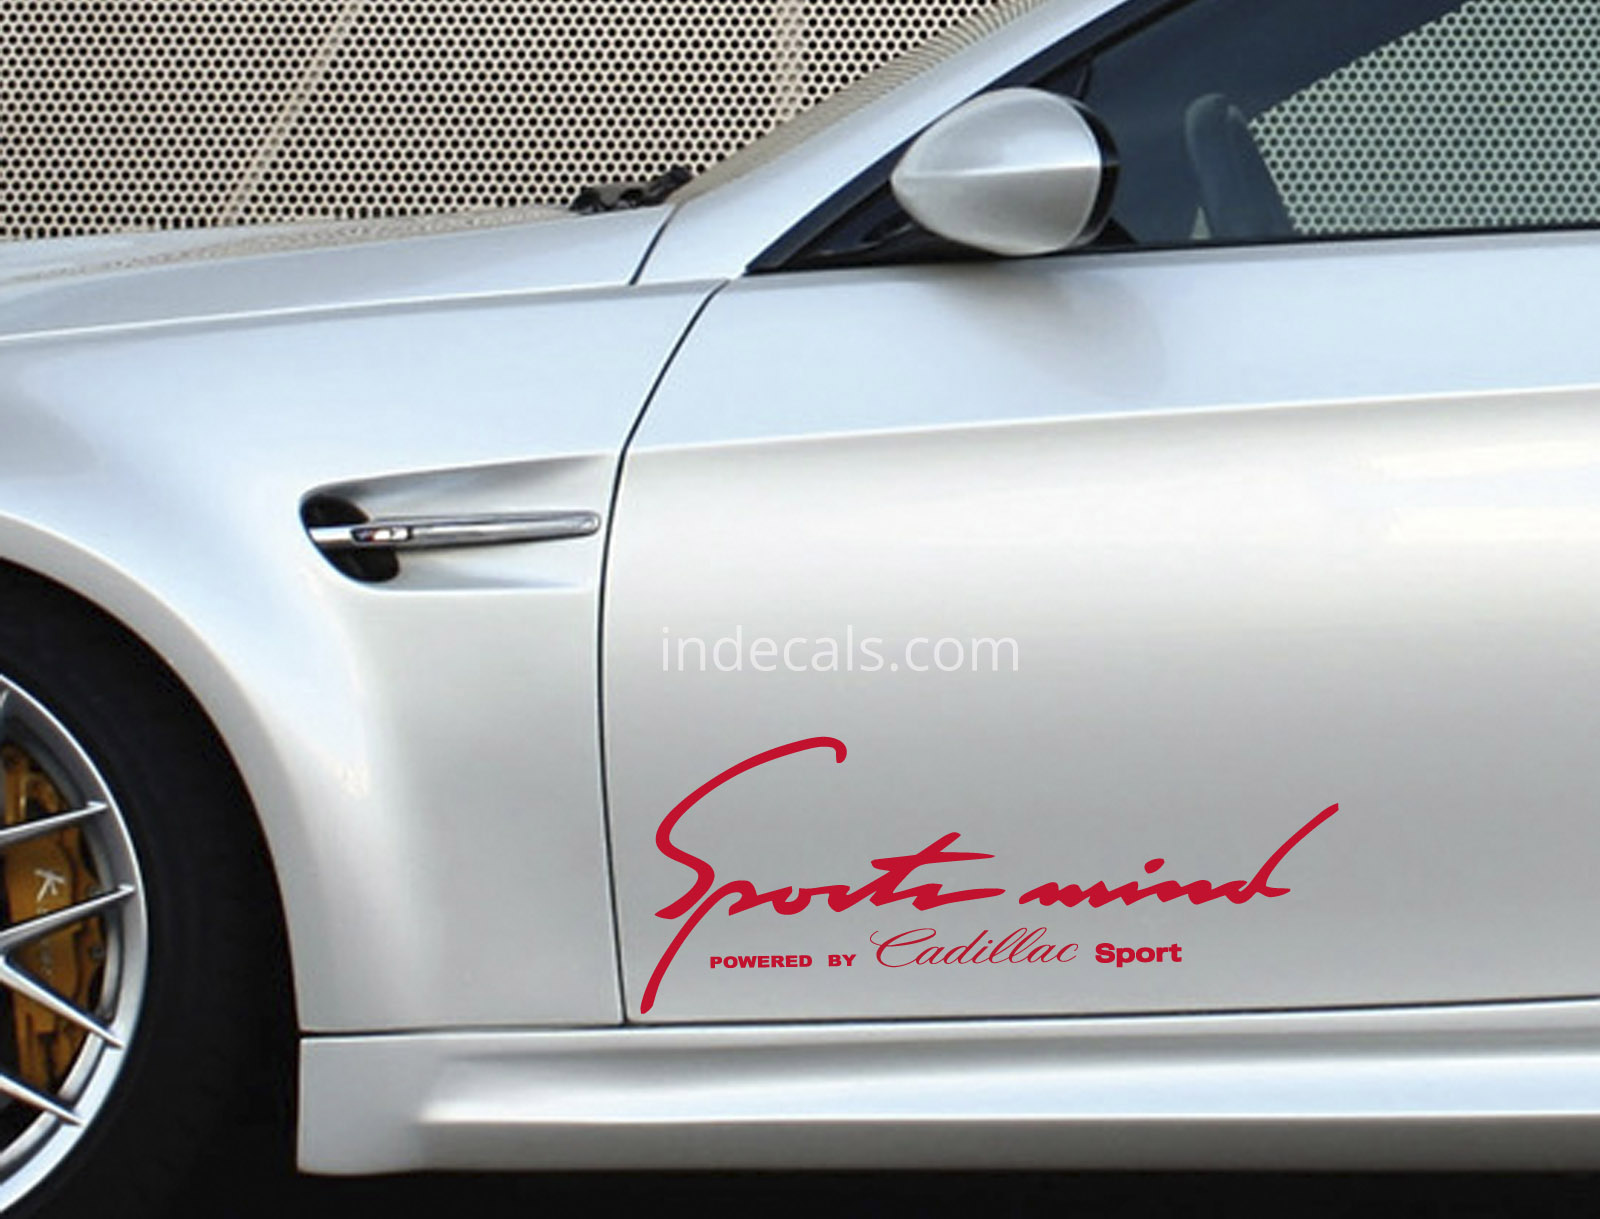 2 x Cadillac Sports Mind Stickers - Red